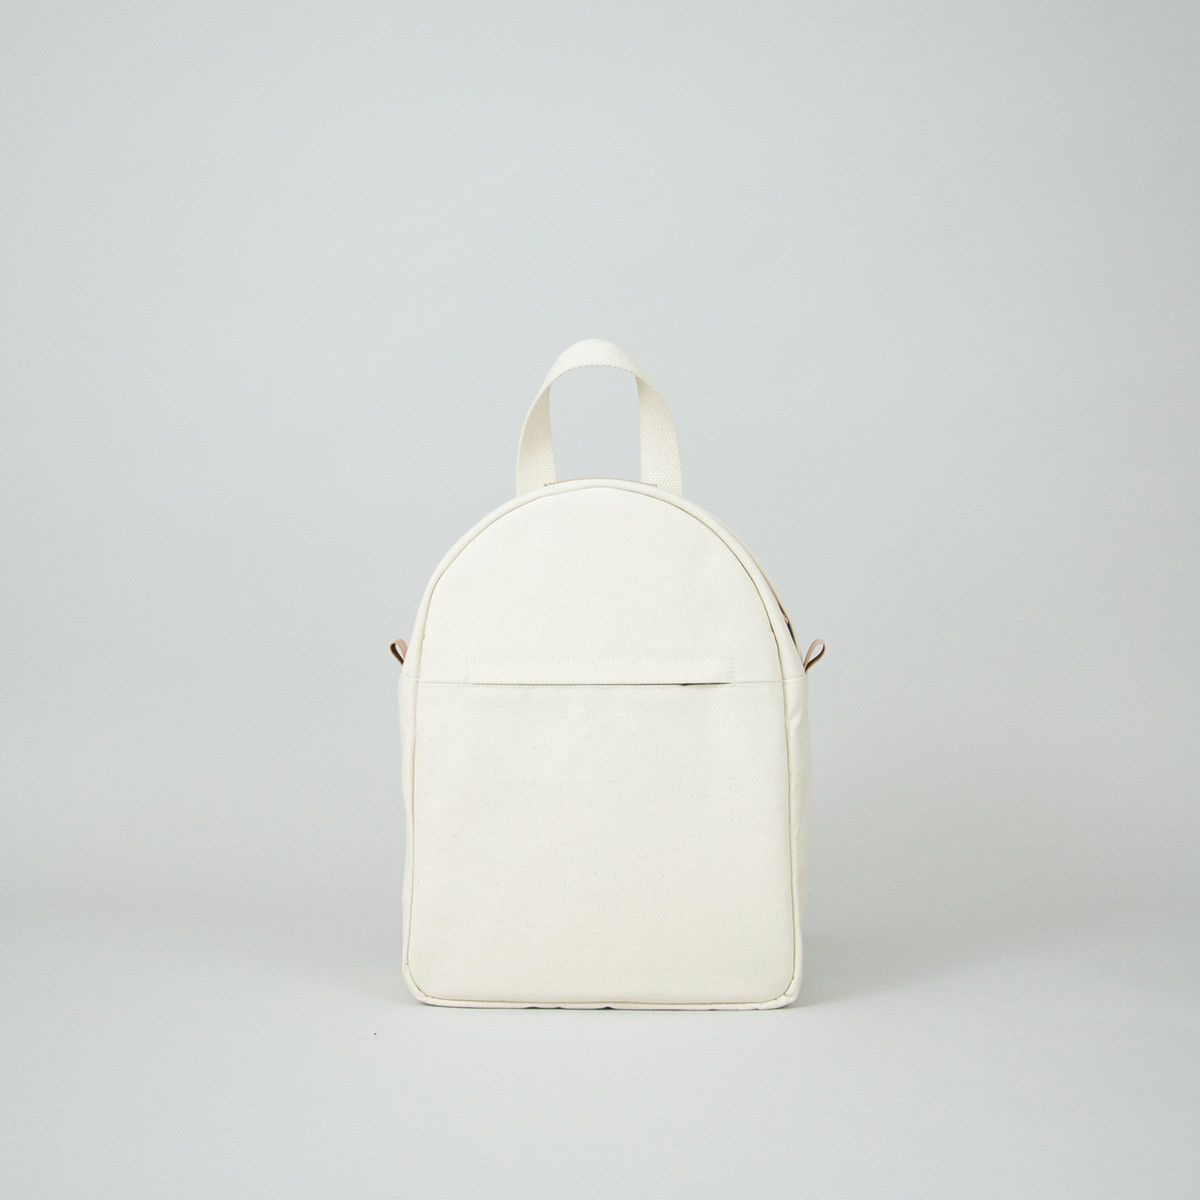 SALE | FURTHER REDUCTIONS - up to 40% off! Boxy Backpack Off-White ...